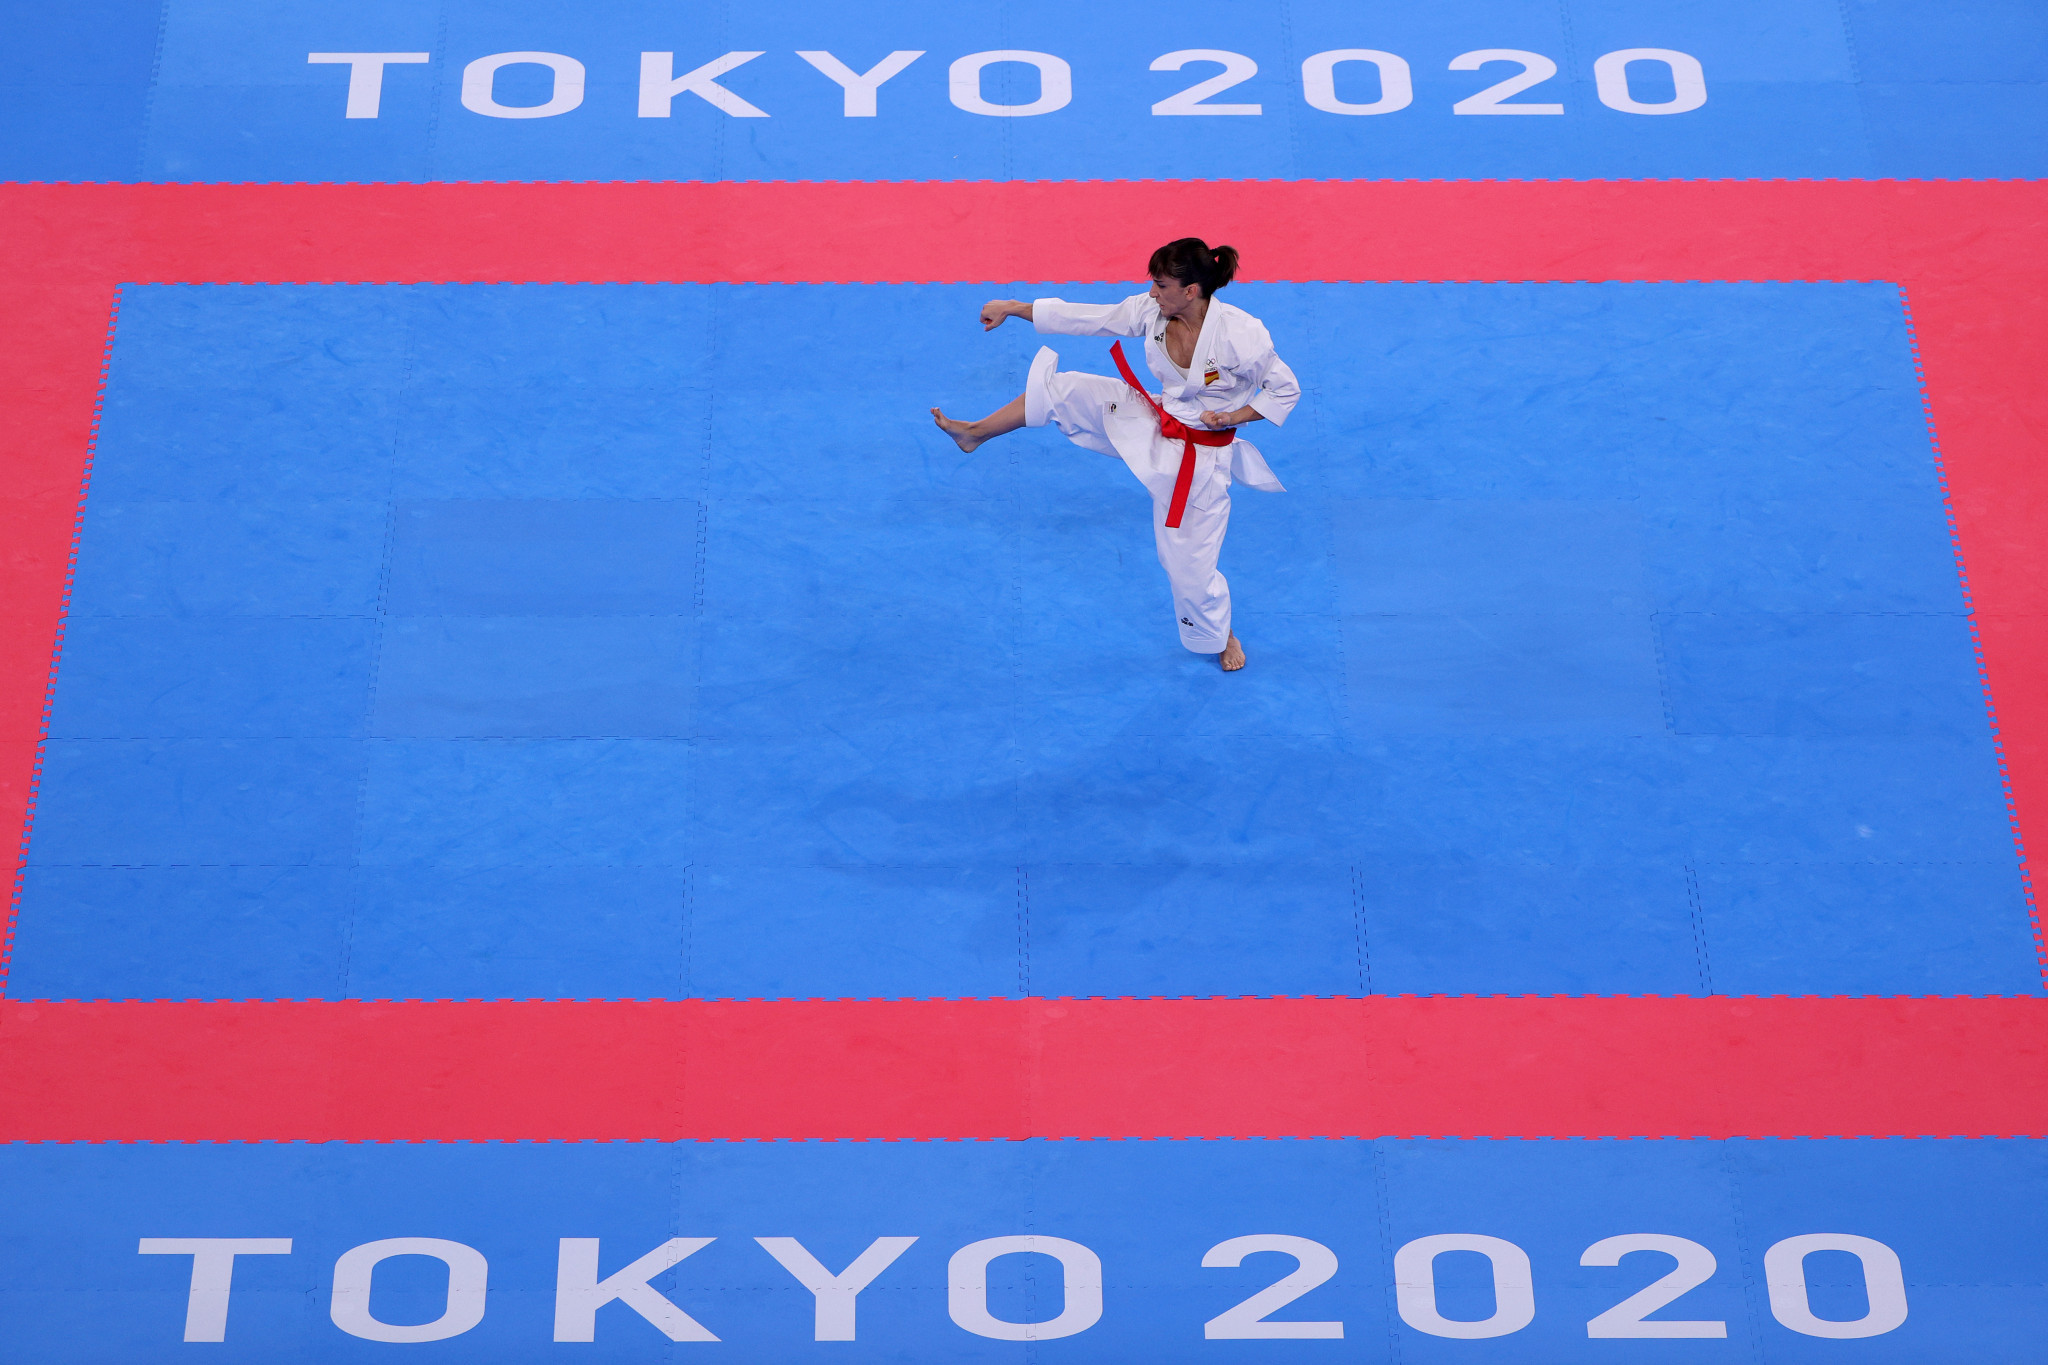 Olympic medallists return to action at final Karate-1 Premier League meeting of the year